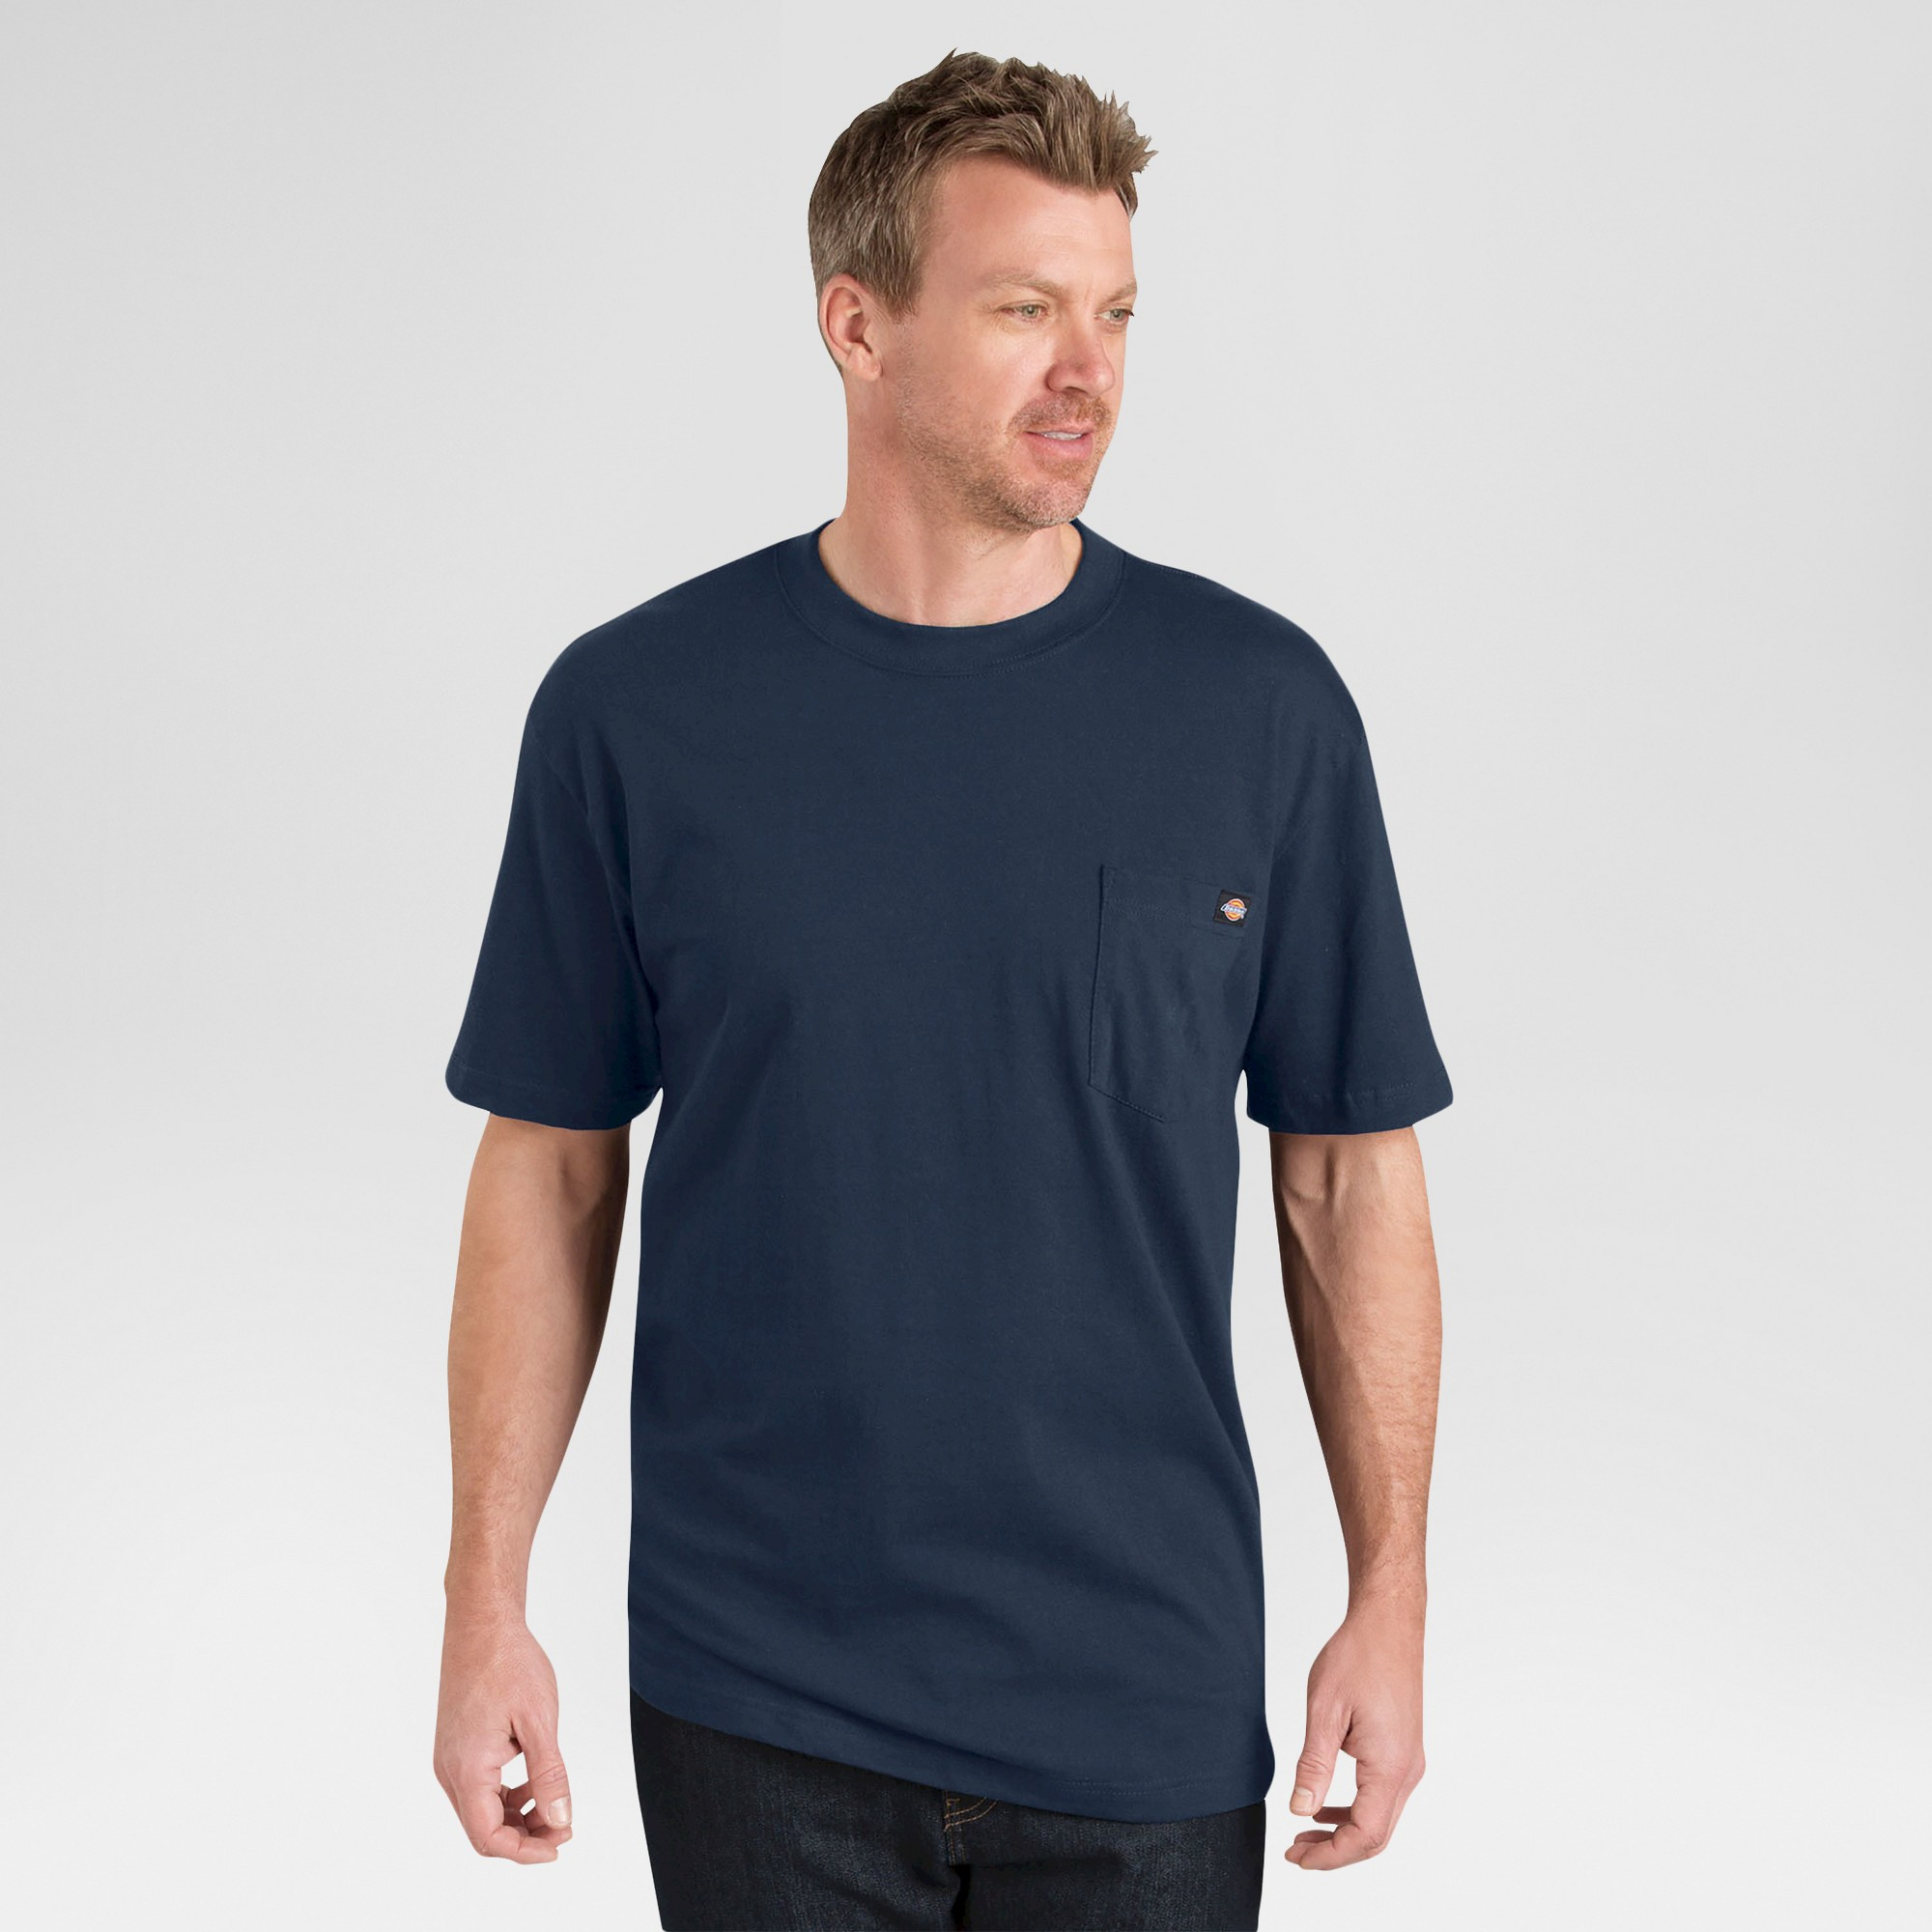 petiteDickies Men's Big & Tall 2 Pack Cotton Short Sleeve Pocket T-Shirt- Navy XXXL, Blue